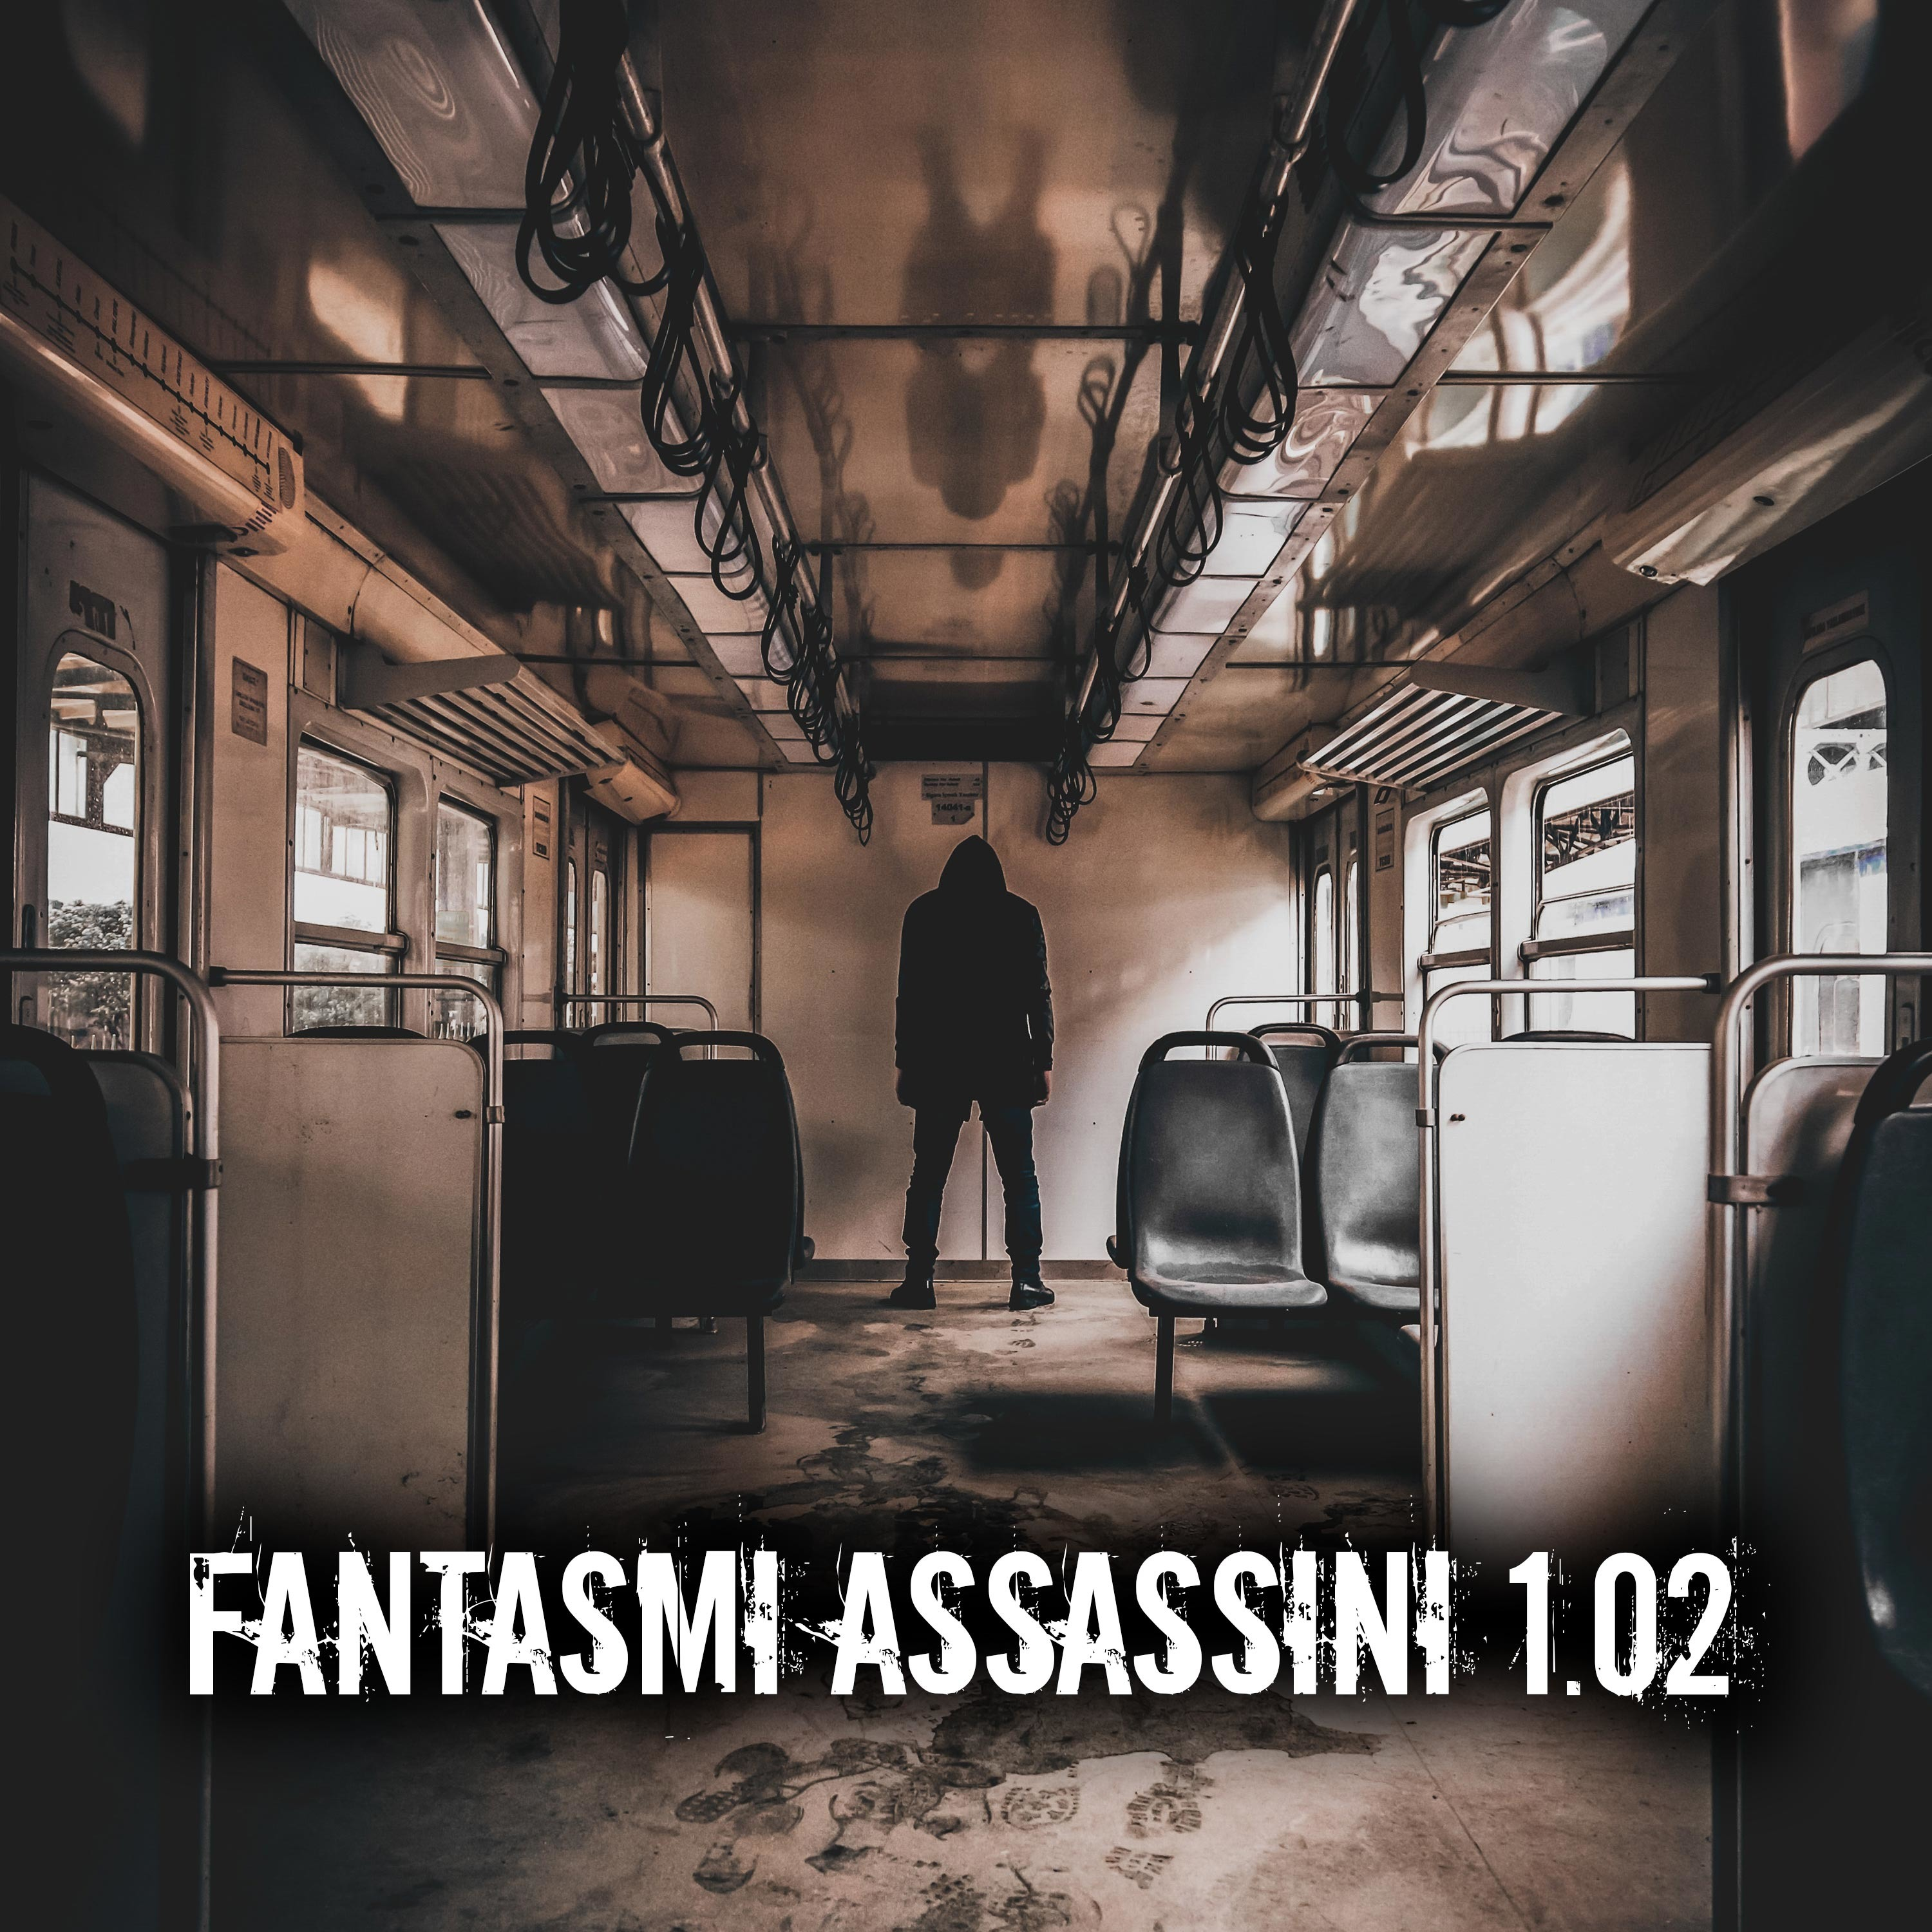 Fantasmi assassini 1.02